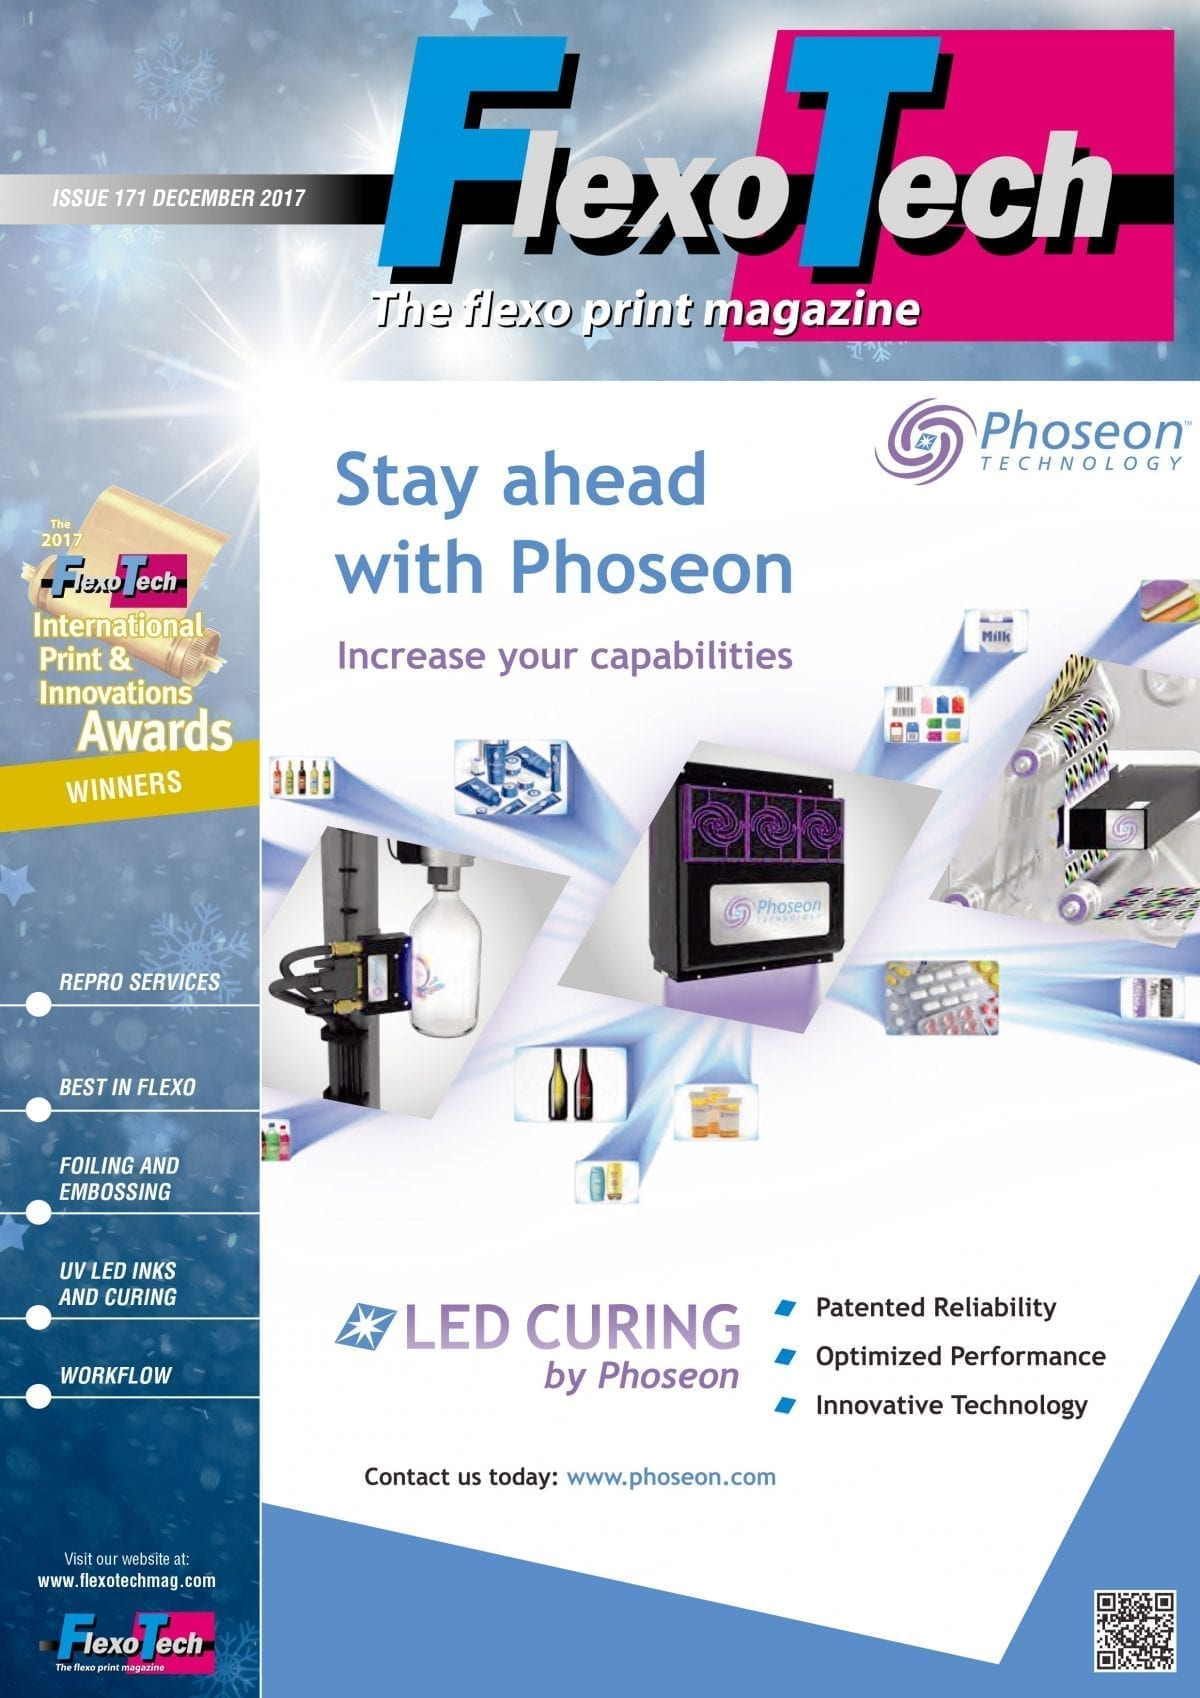 FlexoTech magazine - December 2017 Ultra HD Flexo